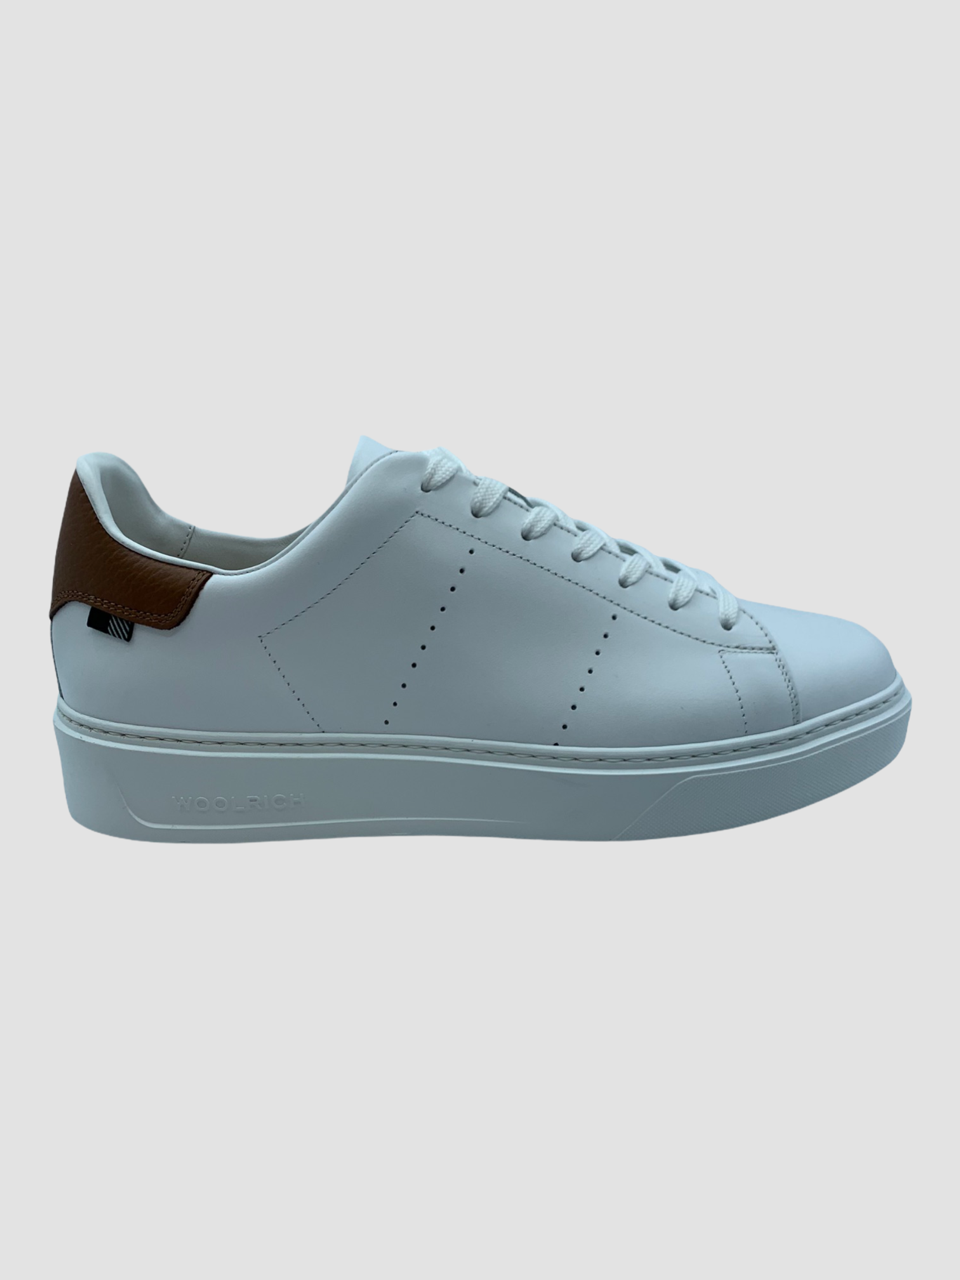 SHOPPING ON LINE WOORLICH SNEAKERS CLASSIC COURT IN PELLE NEW COLLECTION SPRING/SUMMER 2021